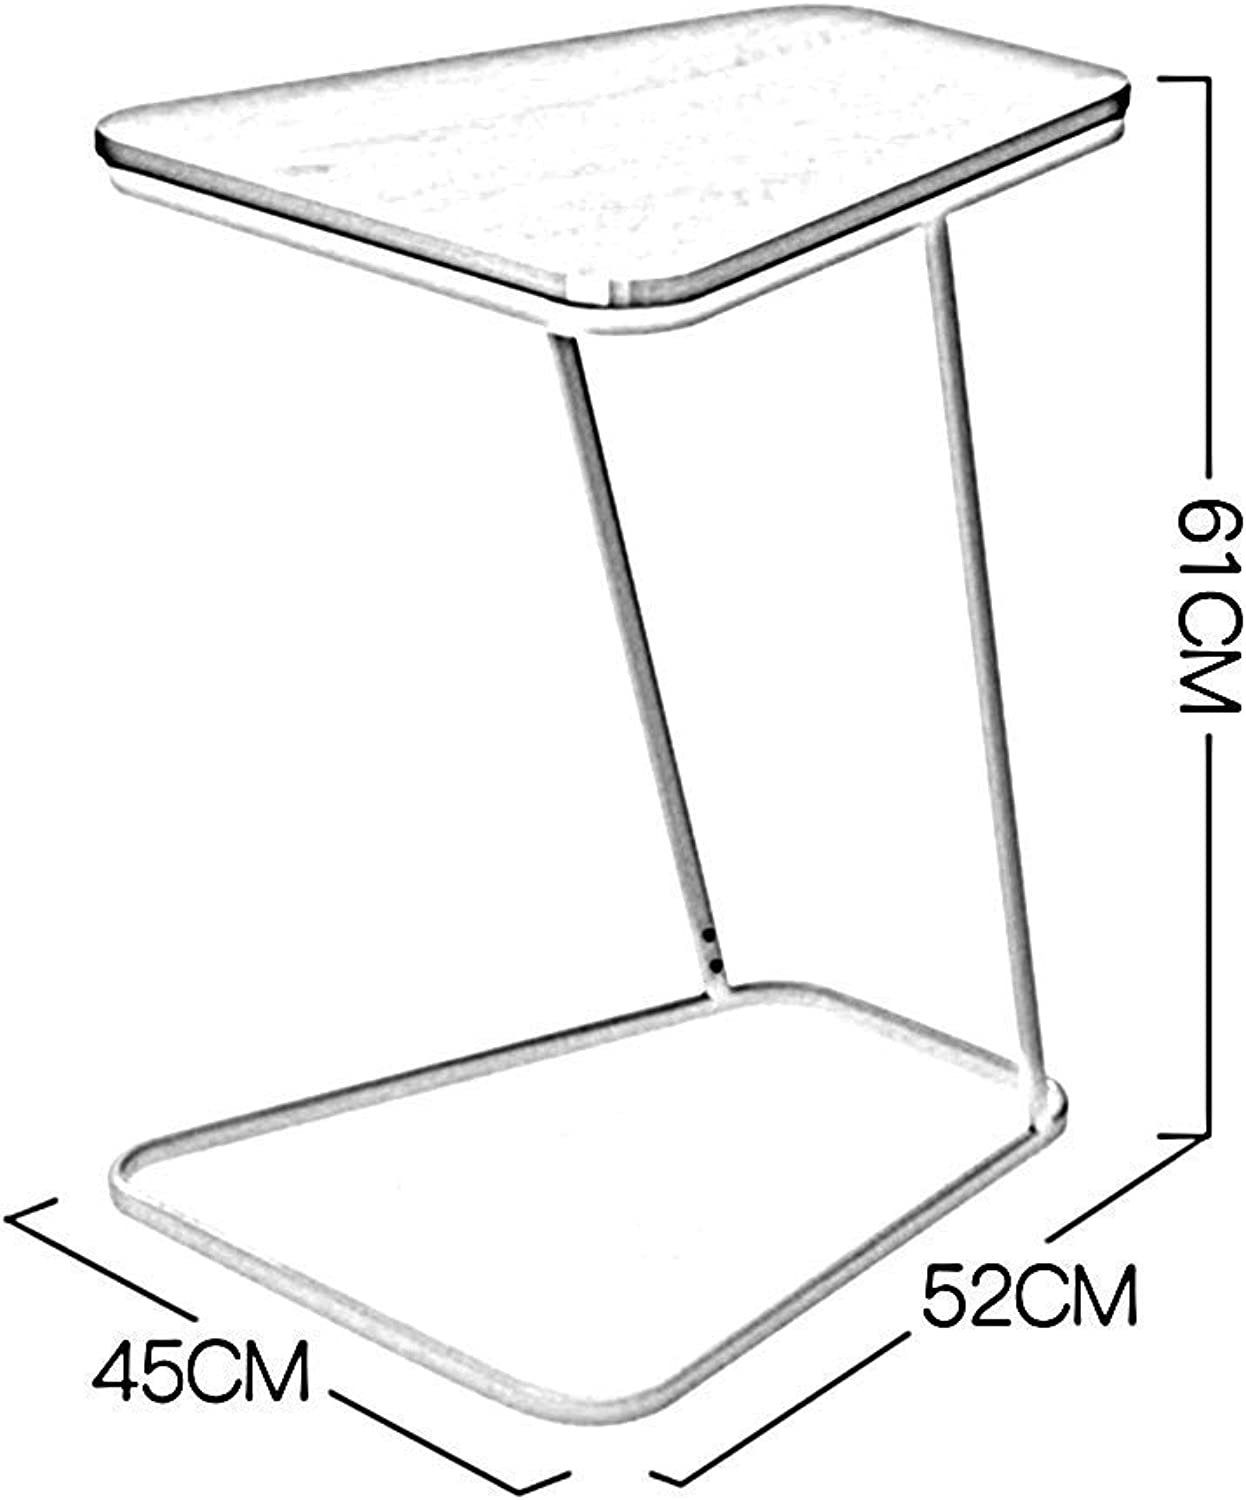 SED Multifunction Small Table Household Snack Home Glass Wood Top Metal Frame Sofa Side End C Shaped Bedroom Simple Study Table